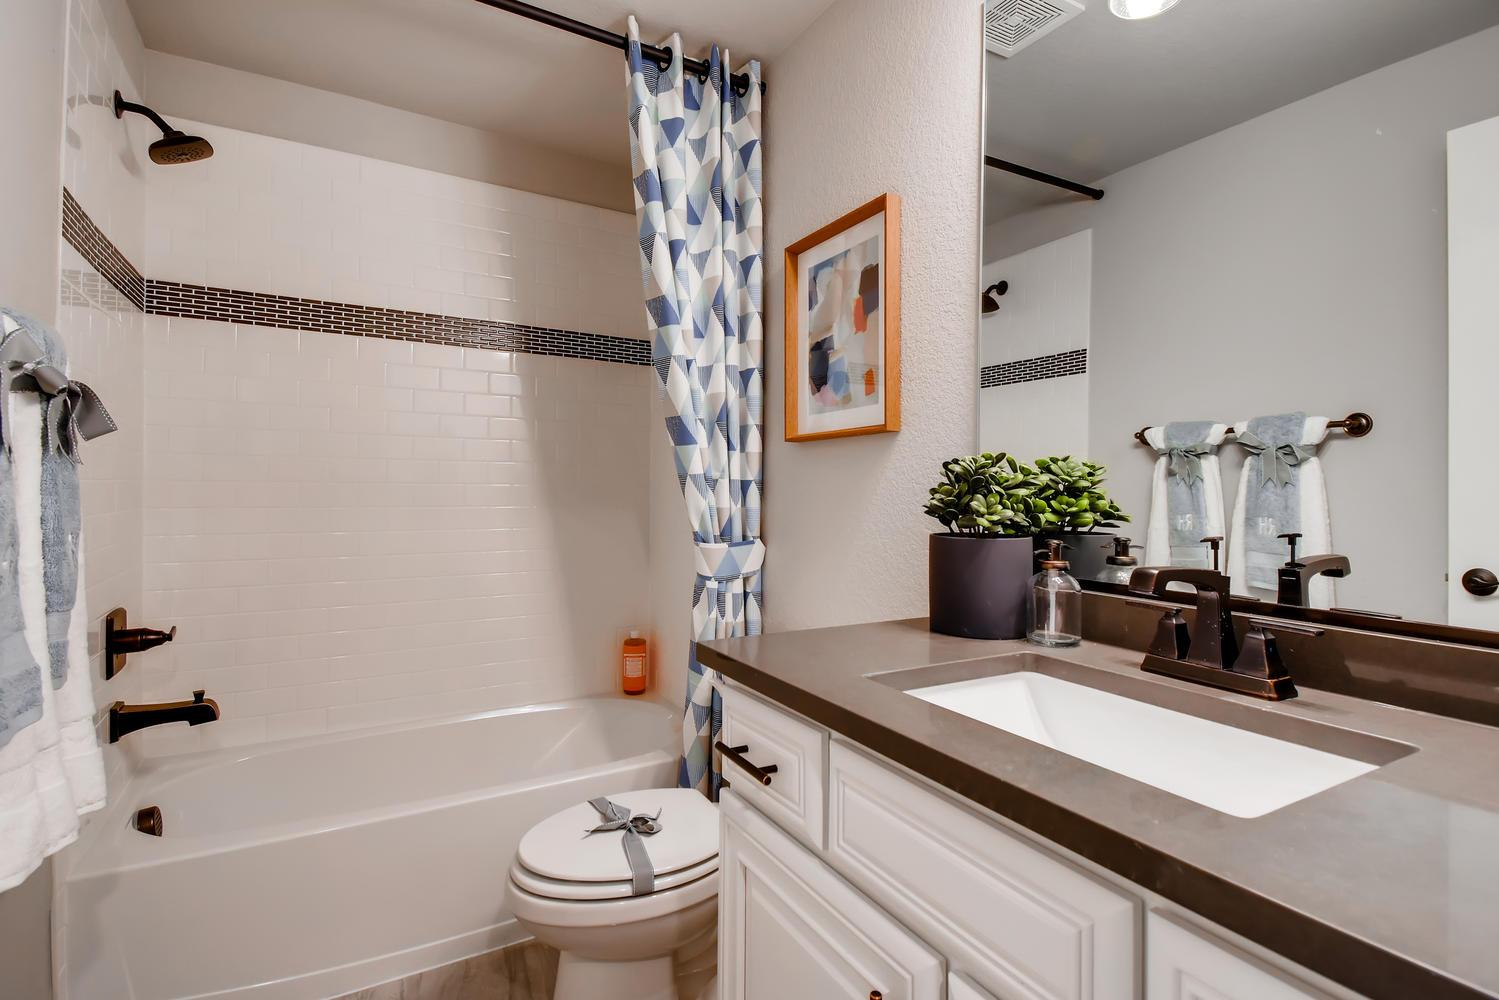 Bathroom featured in the Penrose - Promontory at Todd Creek By RichfieldHomes in Denver, CO